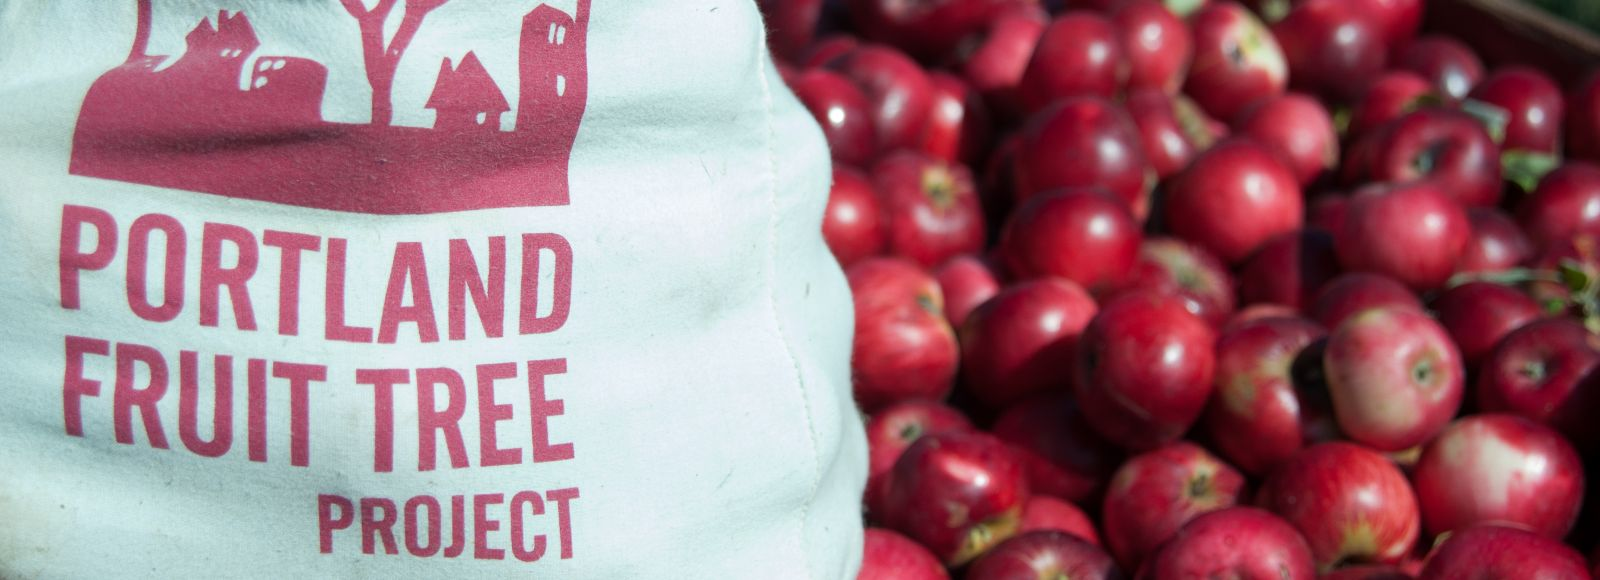 Portland Fruit Tree Project canvas bag next to a barrel of apples